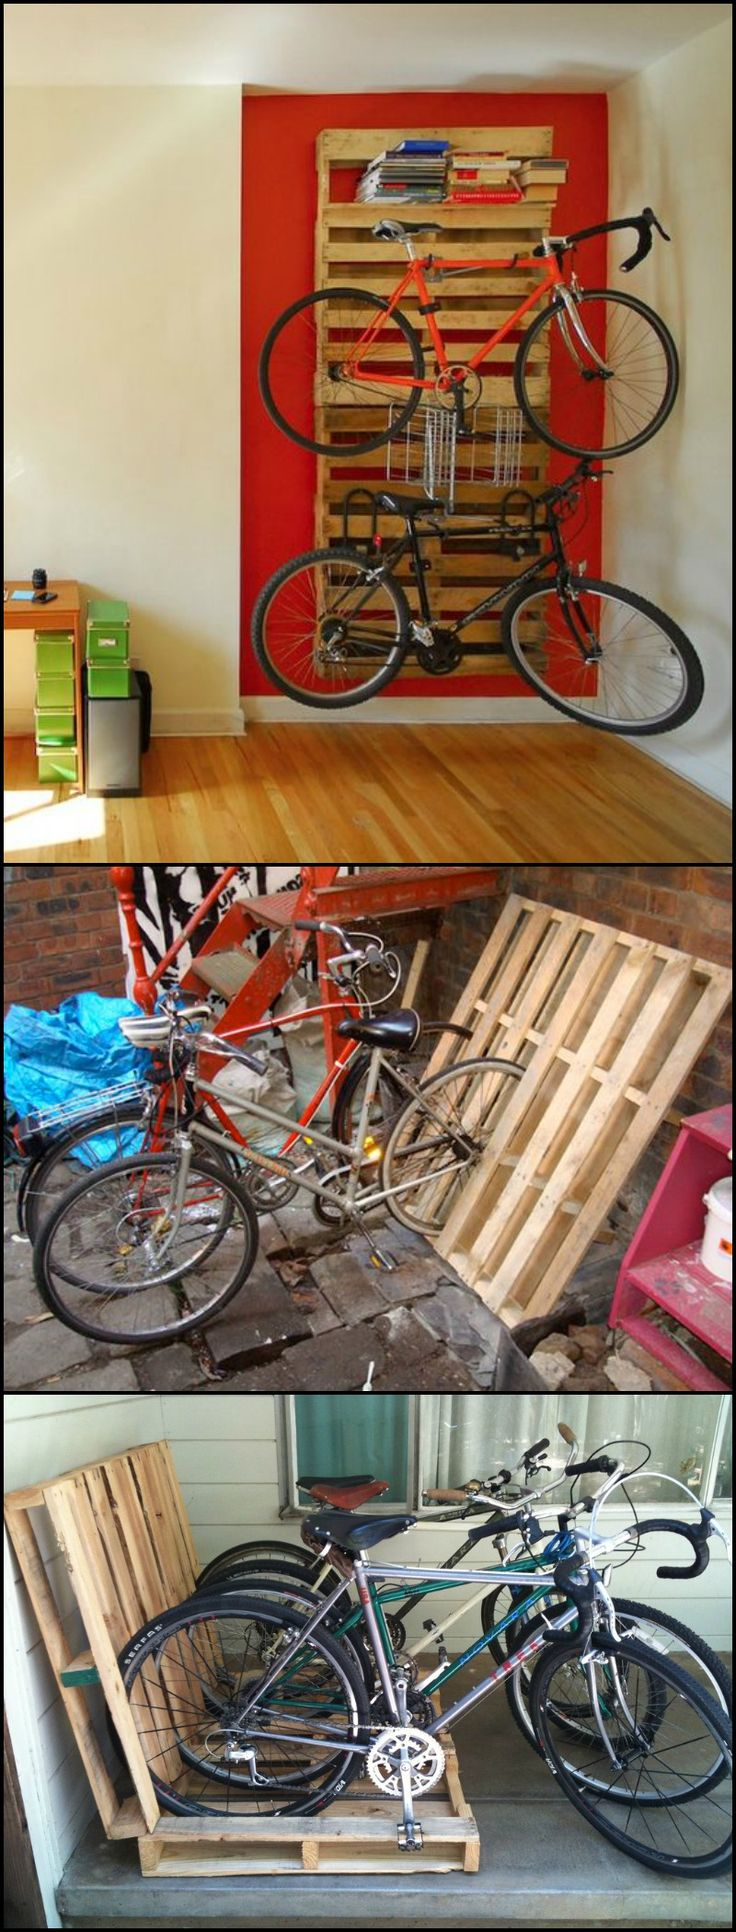 Here's an easy recycling idea for bike enthusiasts!  http://diyprojects.ideas2live4.com/2016/02/02/build-a-bike-rack-from-recycled-pallets/  This pallet project is very simple, It doesn't matter if you've got big bikes or kiddie bikes (or both). Most pallets will fit any regular bike wheel size. Even kids scooters fit perfectly in a pallet bike rack!  Get more DIY pallet bike rack ideas by viewing our album now. :)  Is this going to be your next pallet project? :)